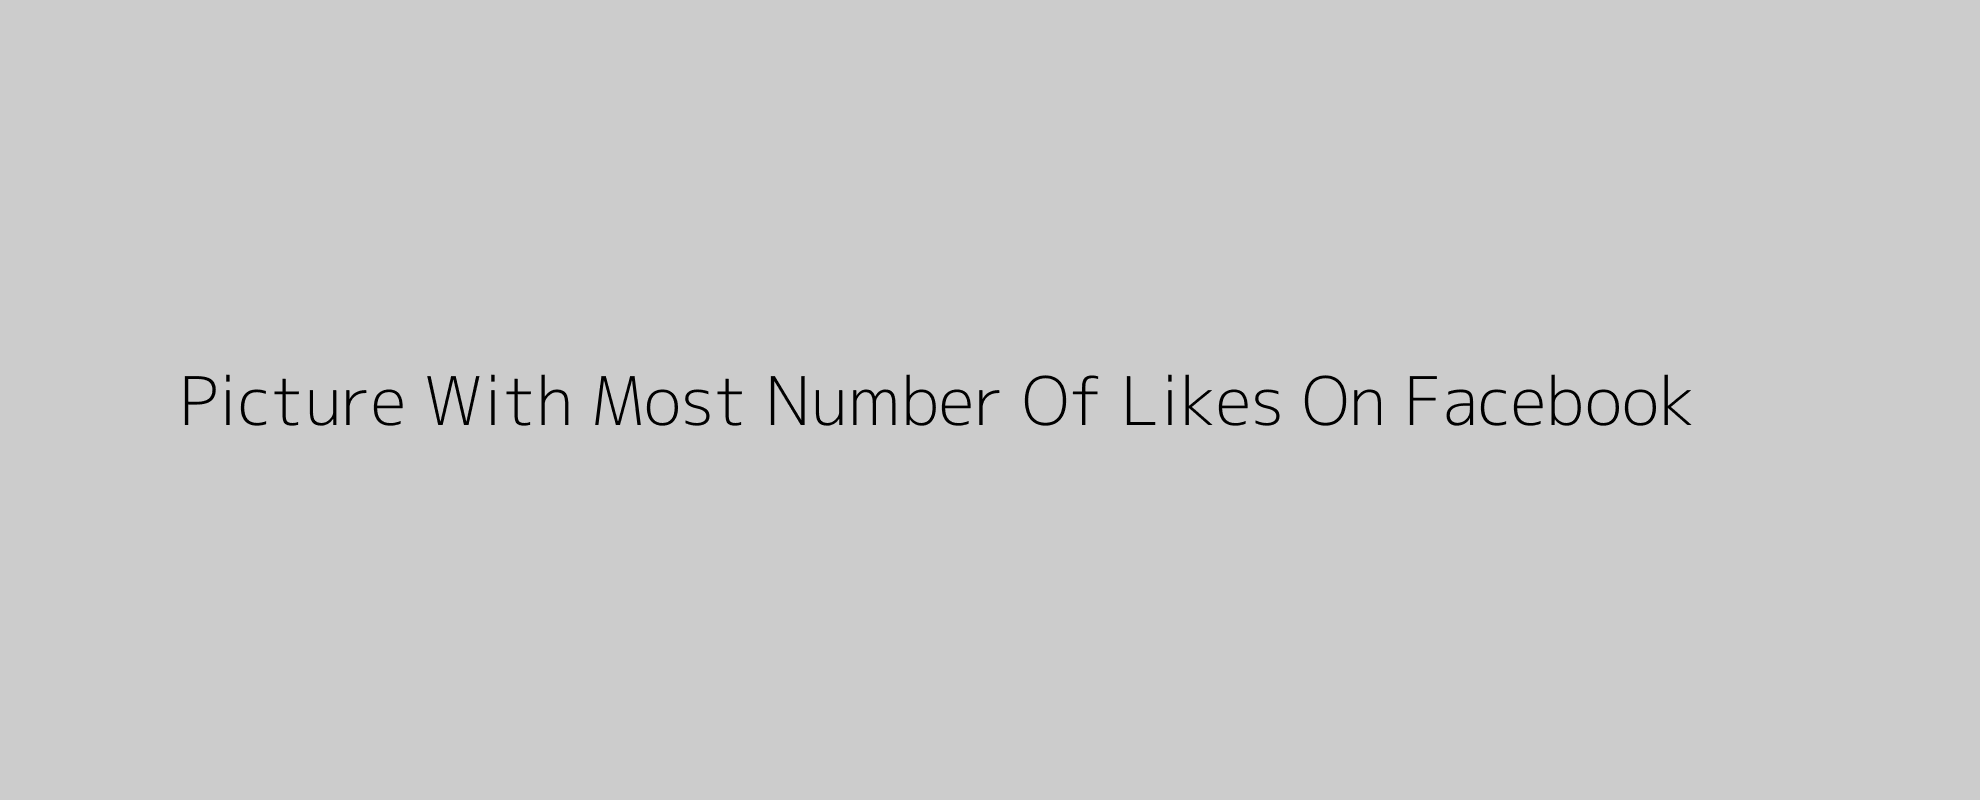 Picture With Most Number Of Likes On Facebook